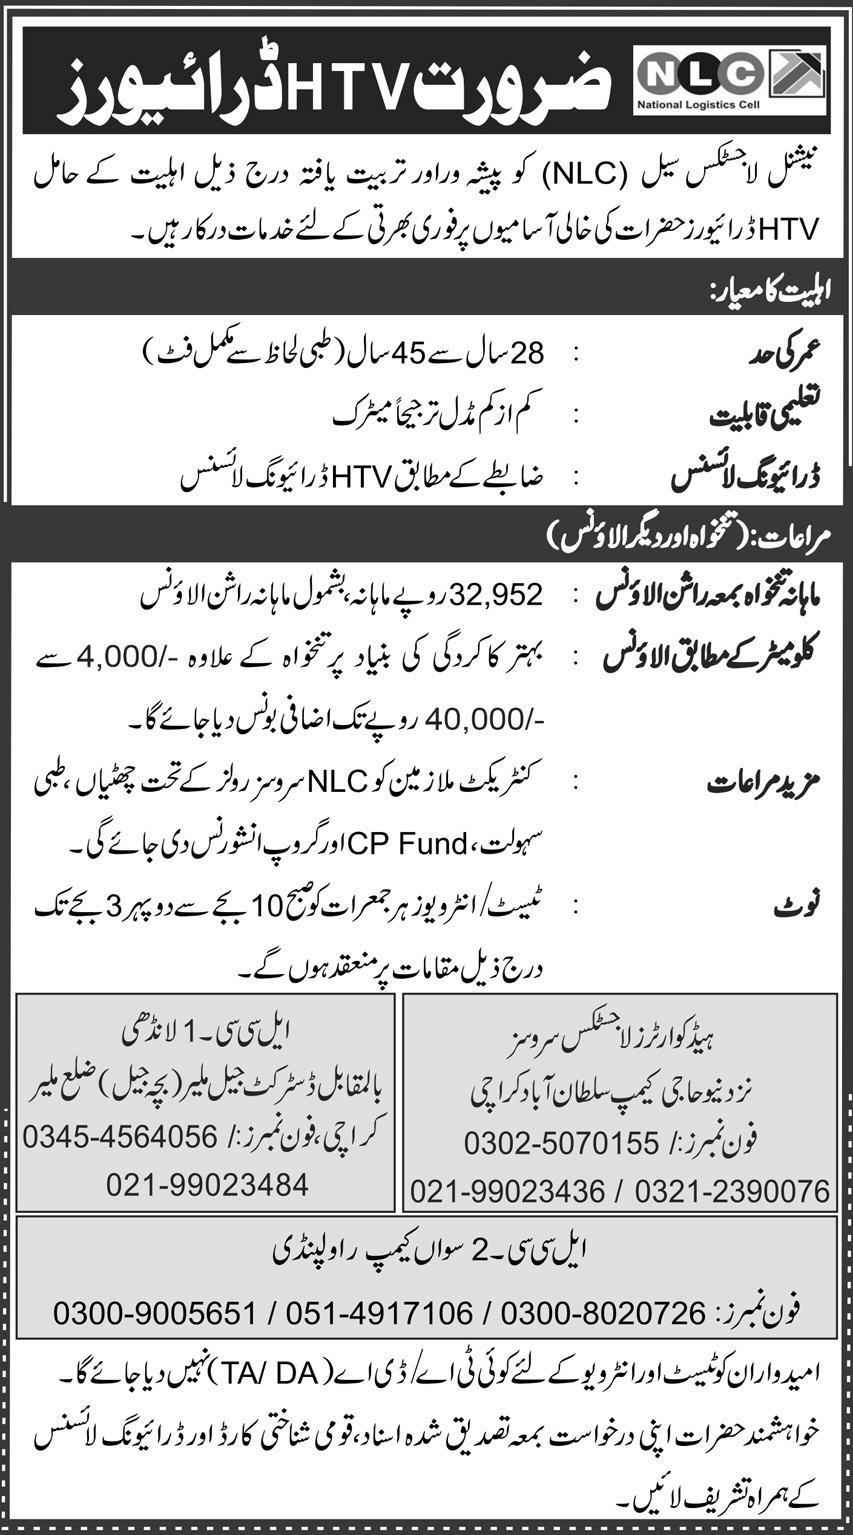 Salary 32,952 in National Logistics Cell NLC Jobs 2020 at Karachi